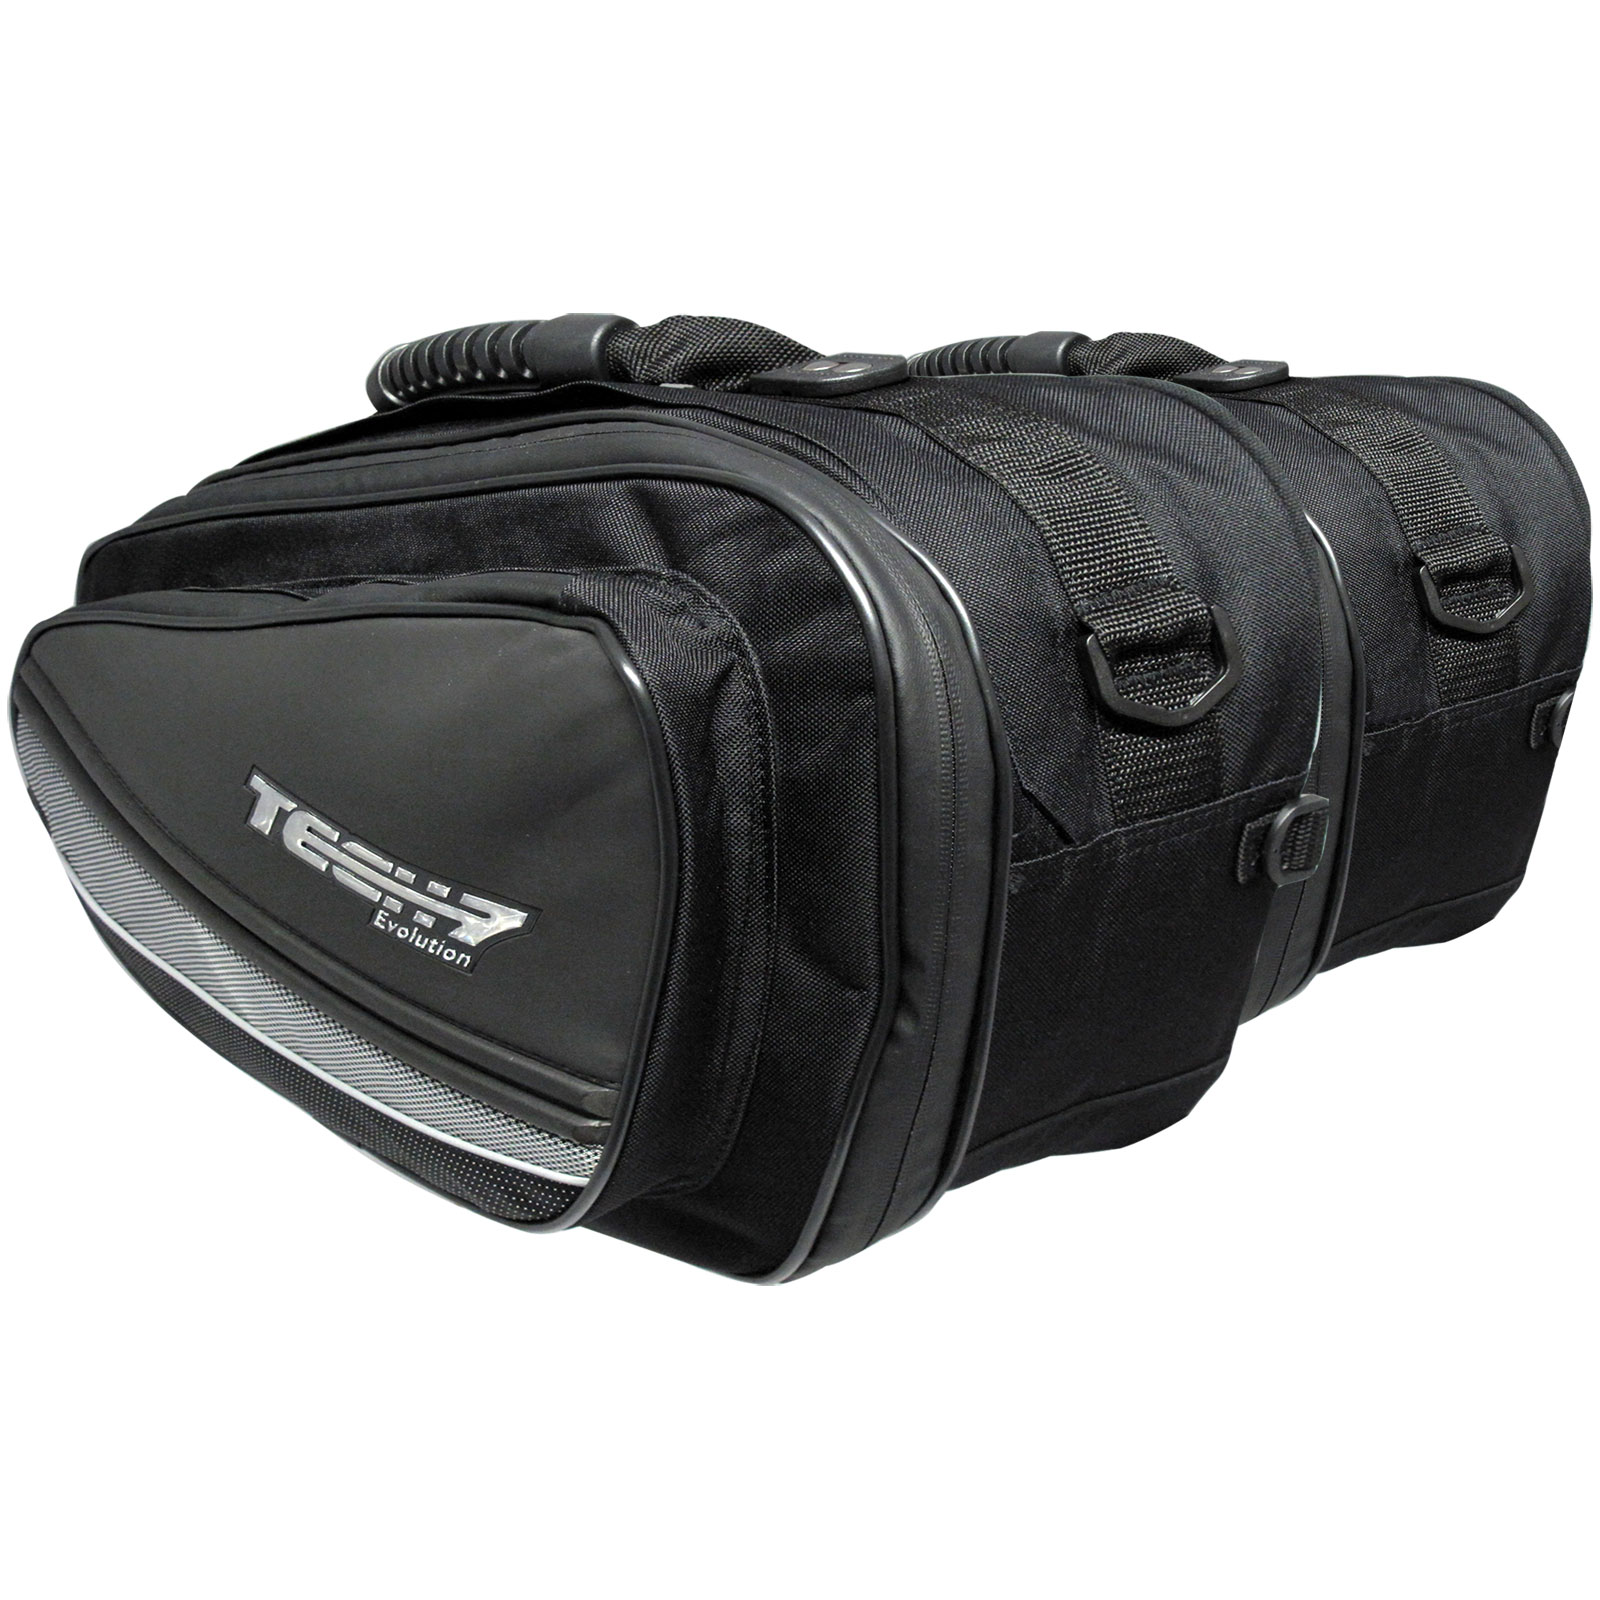 f984699d44 Details about Tech 7 Black Expandable Throw Over Panniers Saddlebags  Motorcycle Luggage